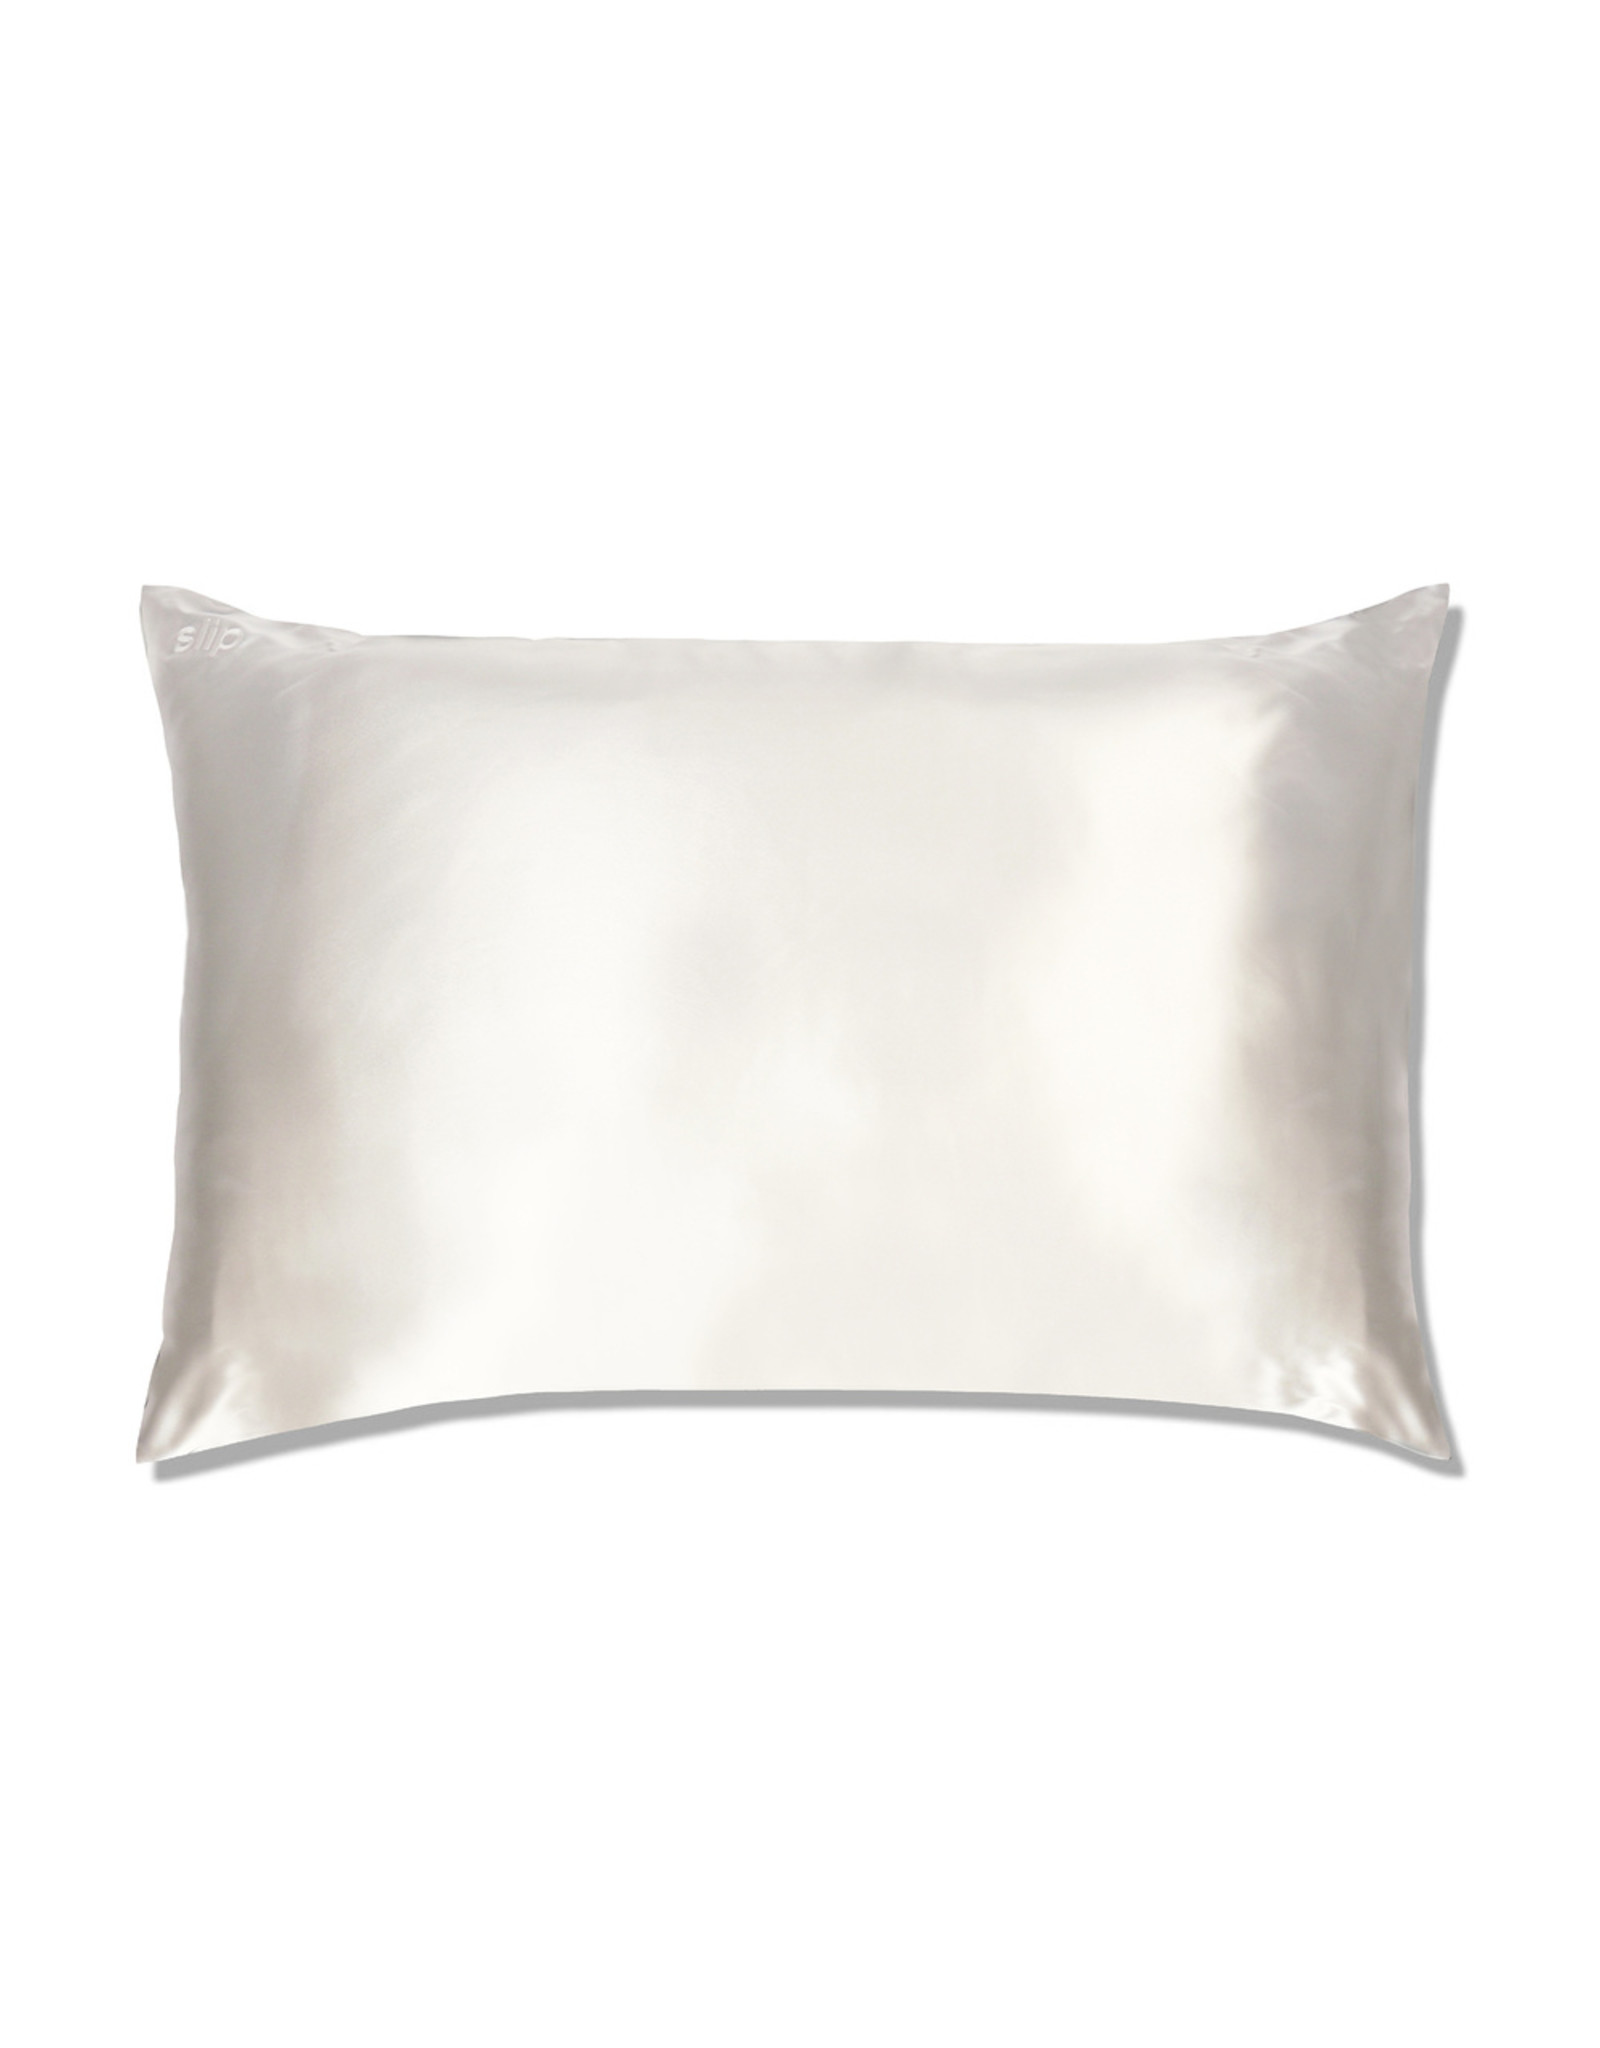 Slip Slip White Queen Pillow Case